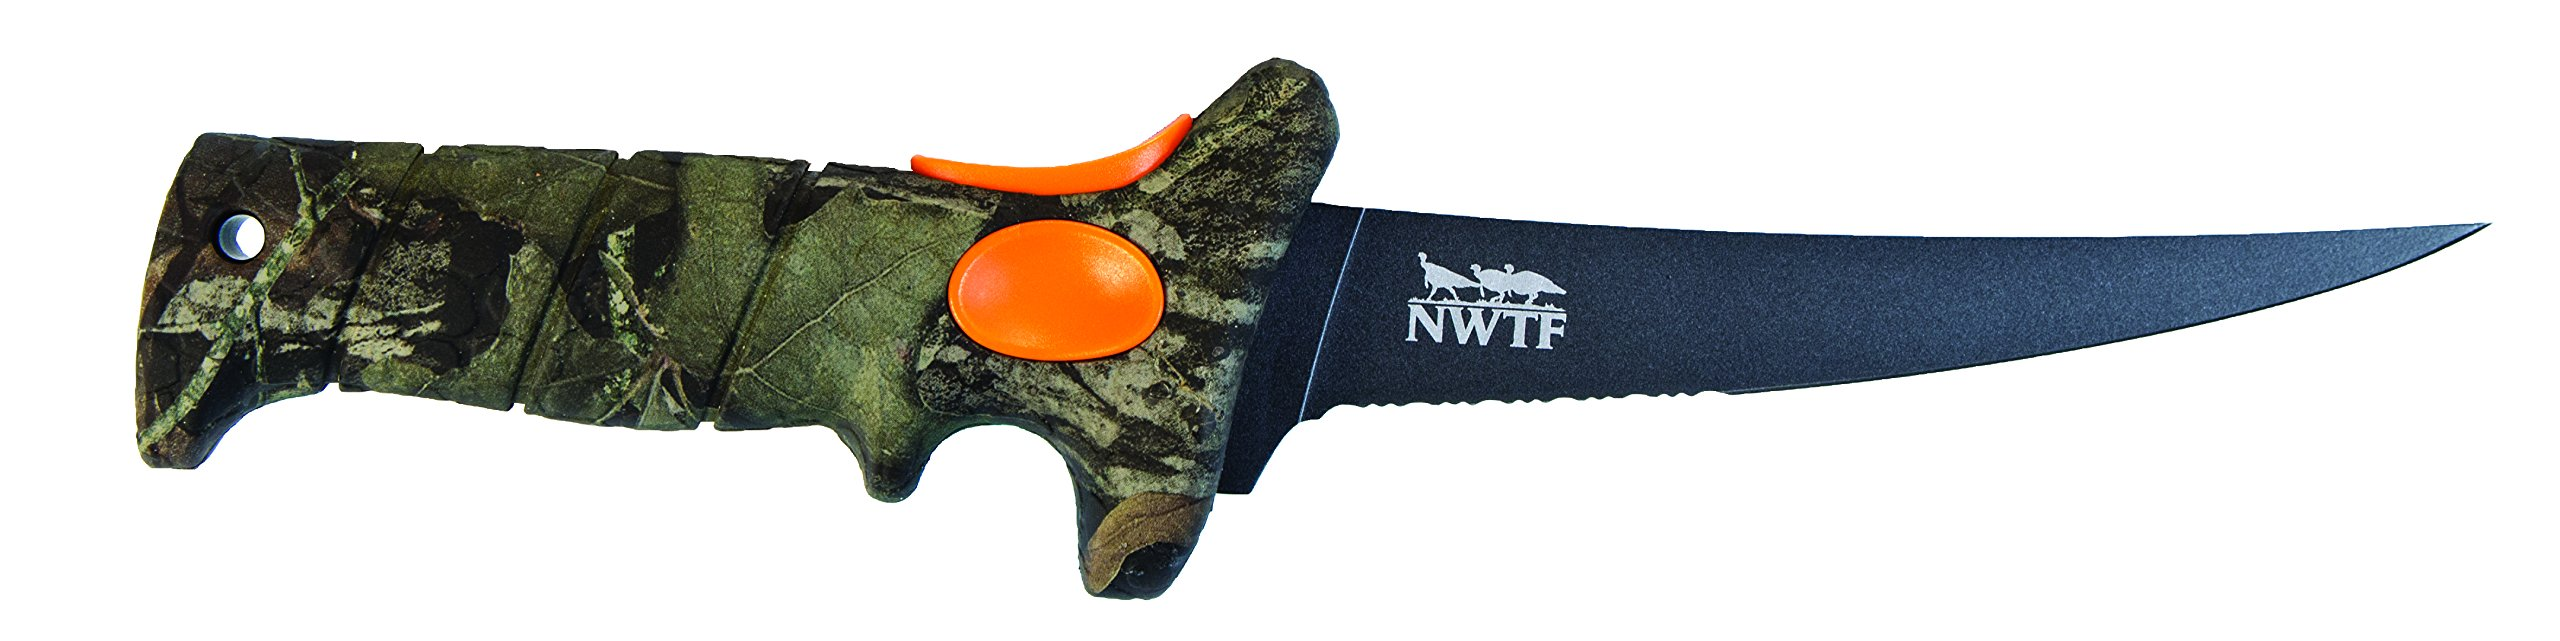 Bubba Blade 6 Inch Turkinator Hunting Knife with Mossy Oak Obsession Pattern, Non-Slip Grip Handle, Full Tang High-Carbon Non-Stick Stainless Steel Serrated Blade, Lanyard Hole and Sheath for Outdoors